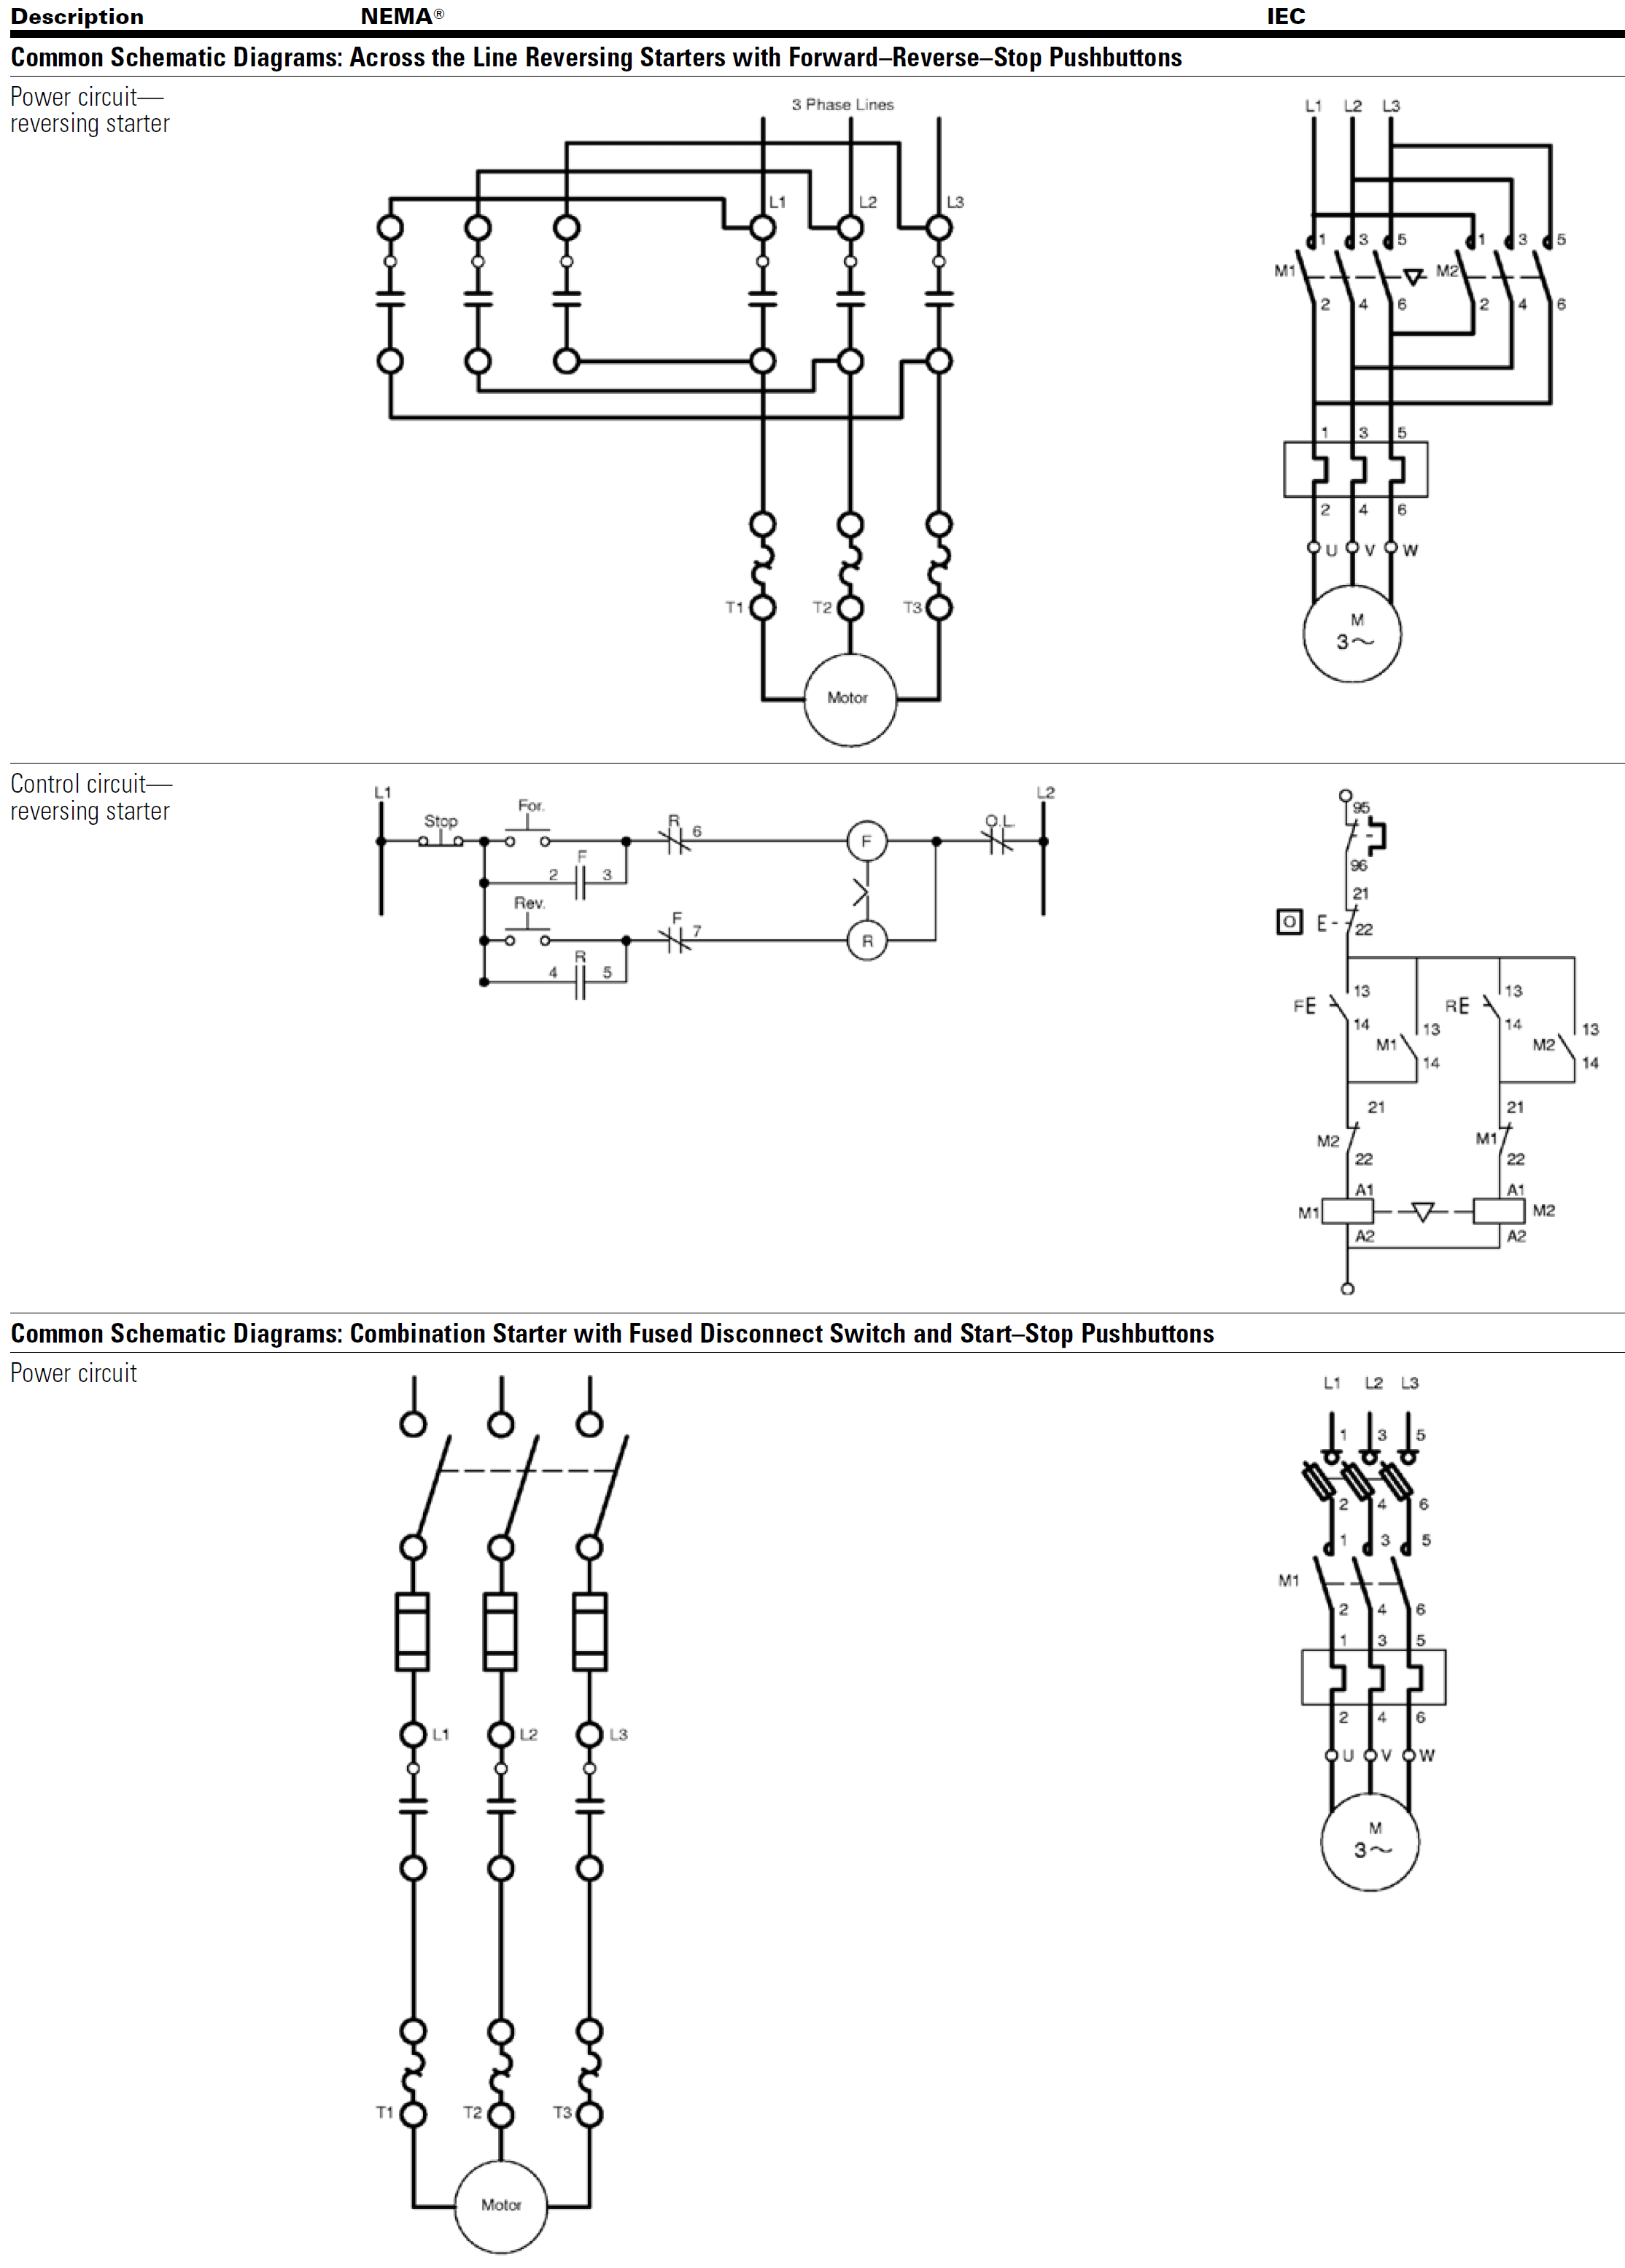 Electrical Schematic Nema Iec Electrical Symbols